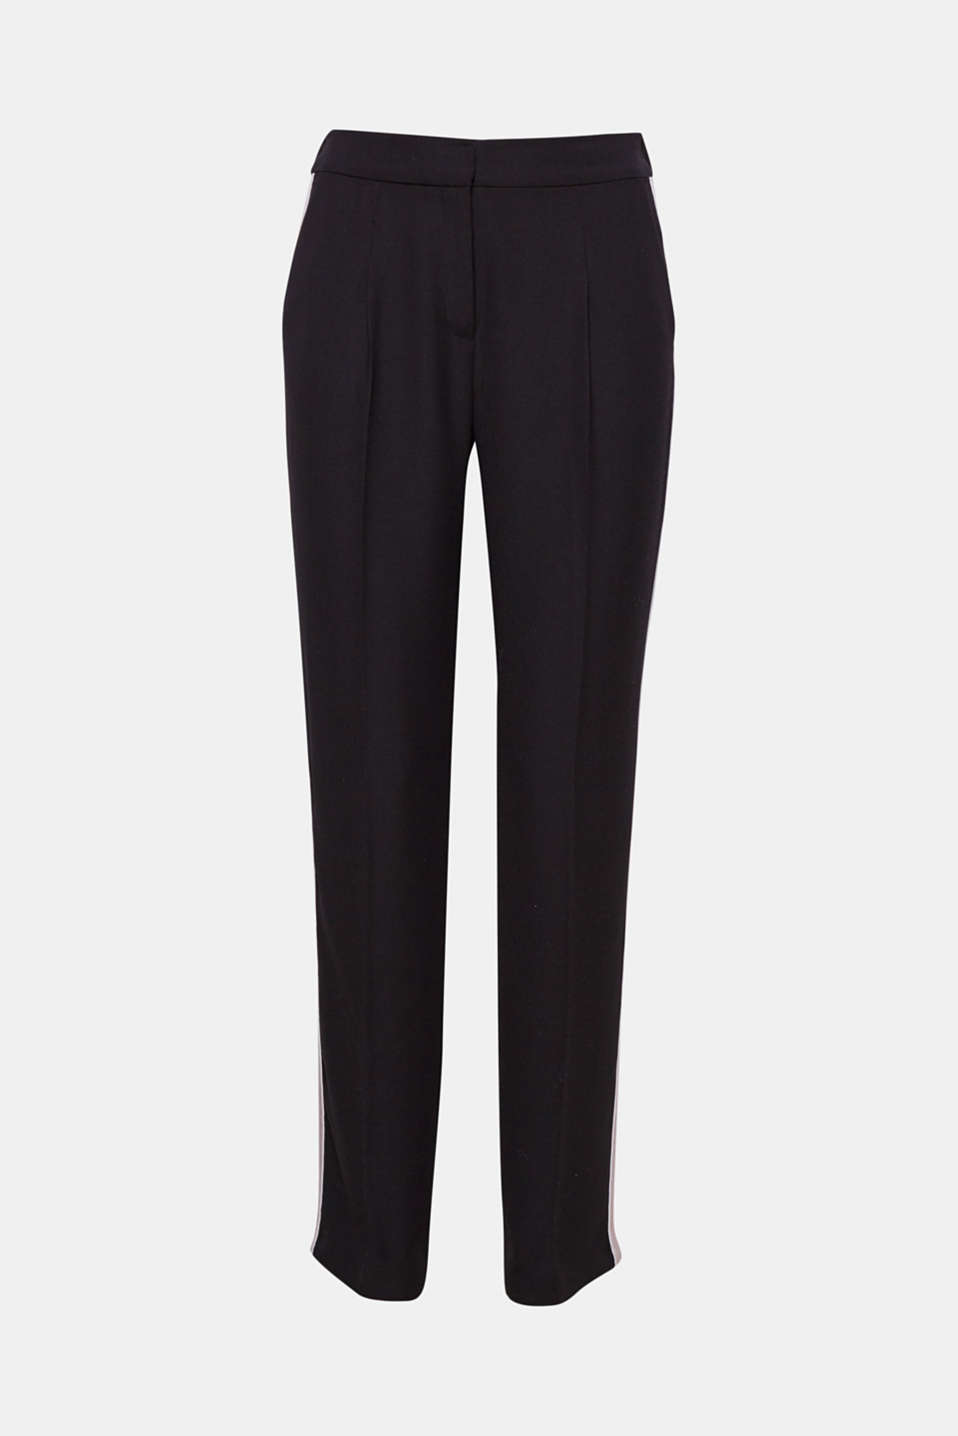 Flowing fabric, straight cut, decorative tuxedo stripes: these trousers combine modern chic with sporty kick!